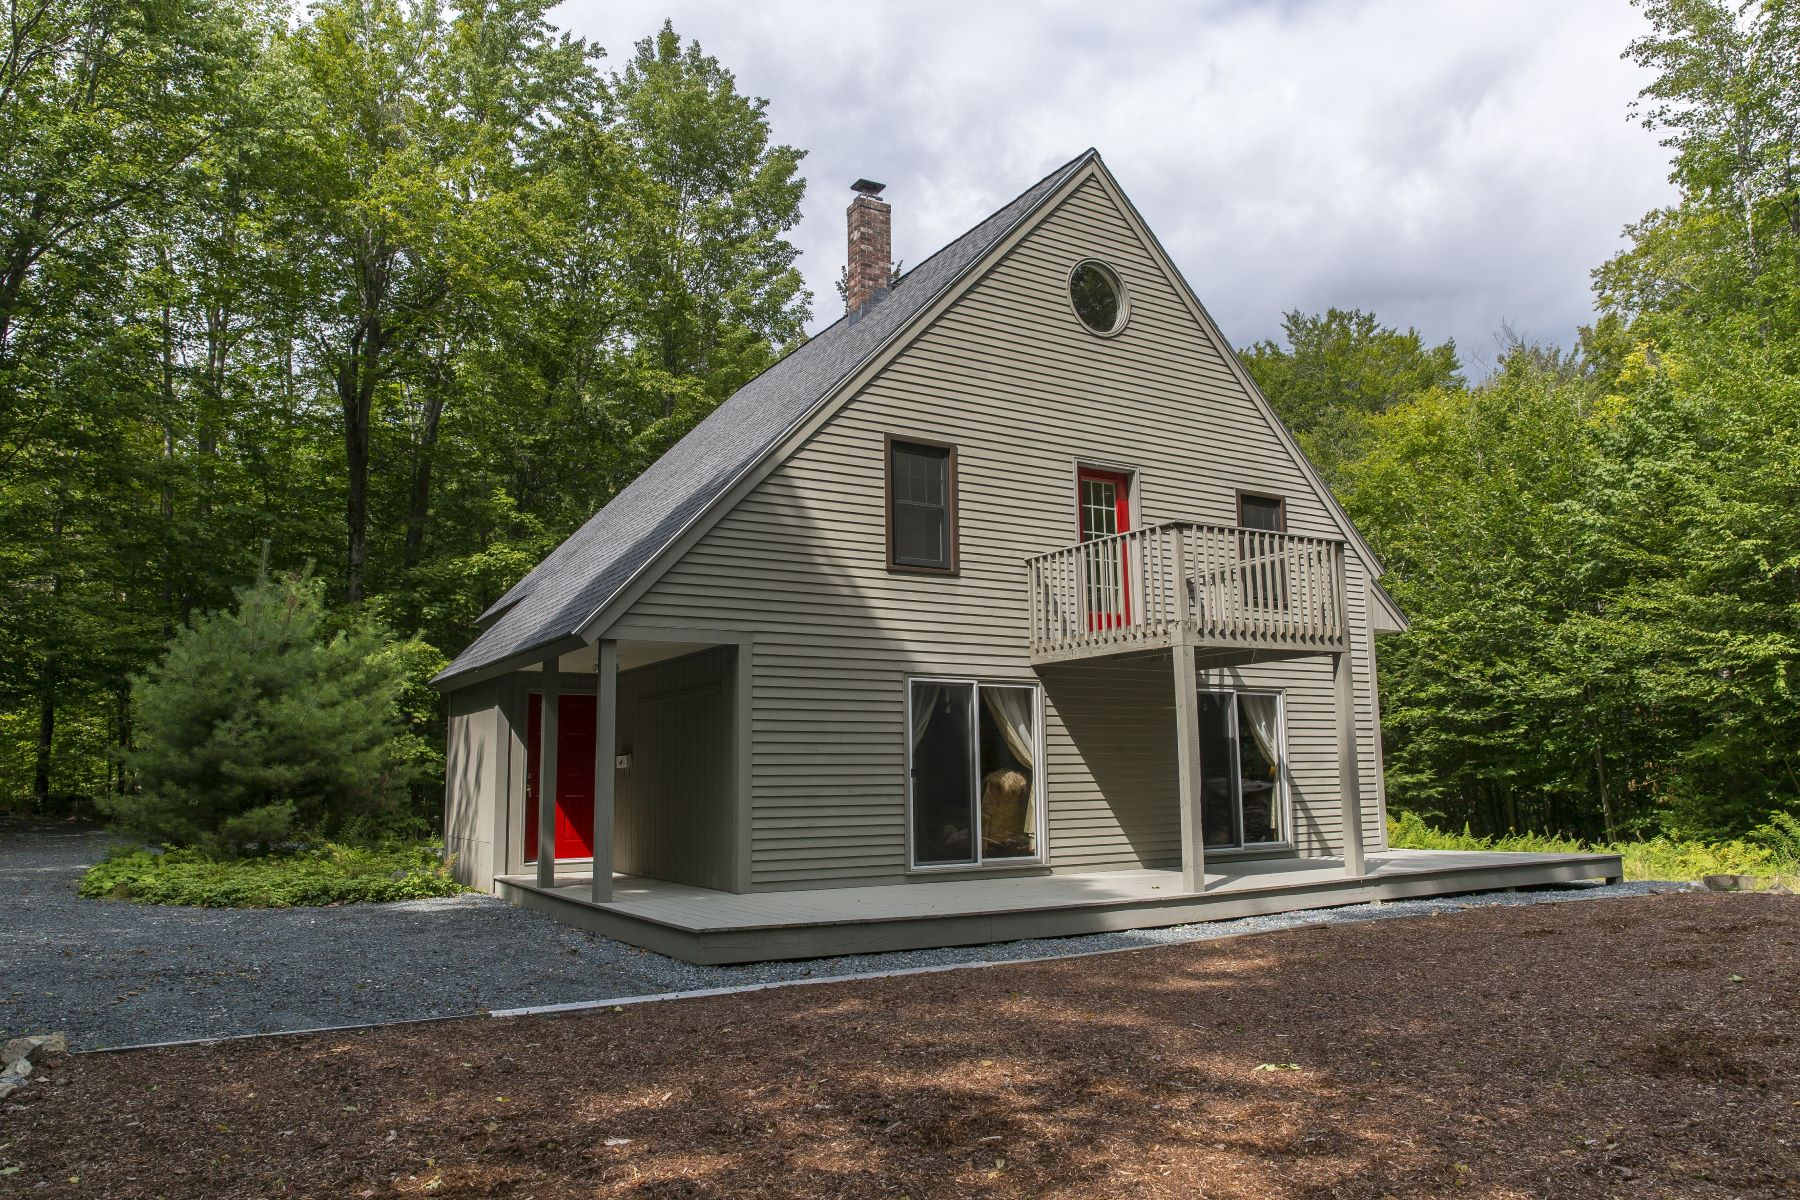 Single Family Home for Sale at 14 Bear Drive, Enfield Enfield, New Hampshire, 03748 United States